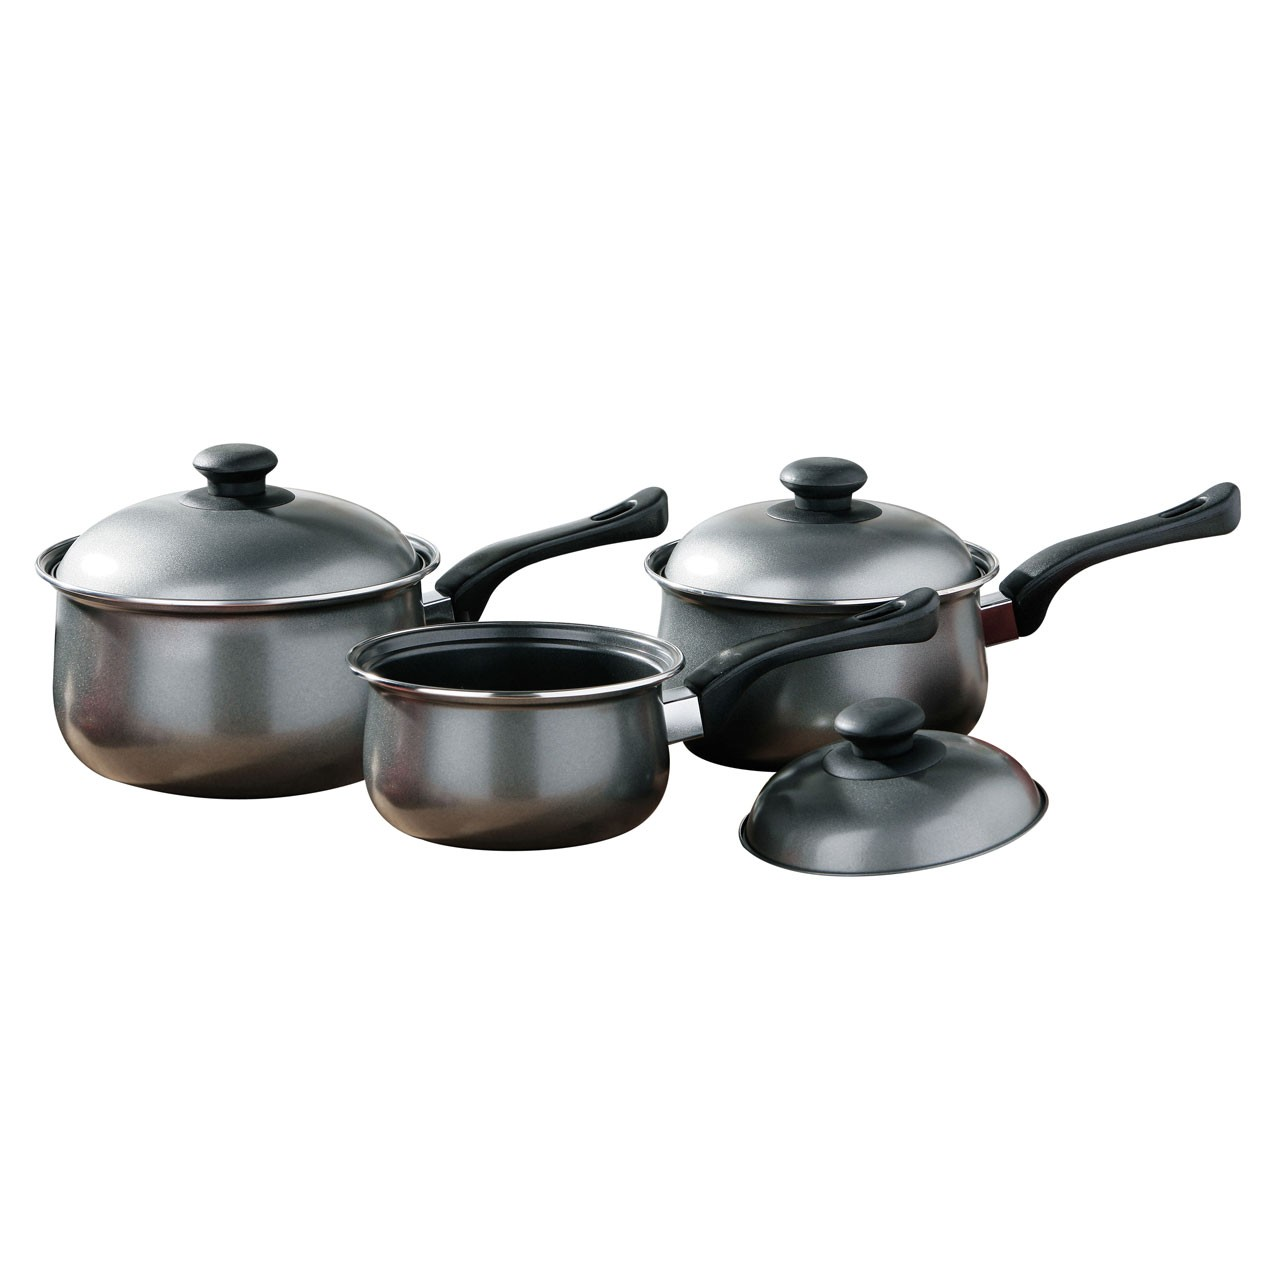 3pc Silver Belly Pan Set Non-Stick Carbon Steel Bakelite Handle